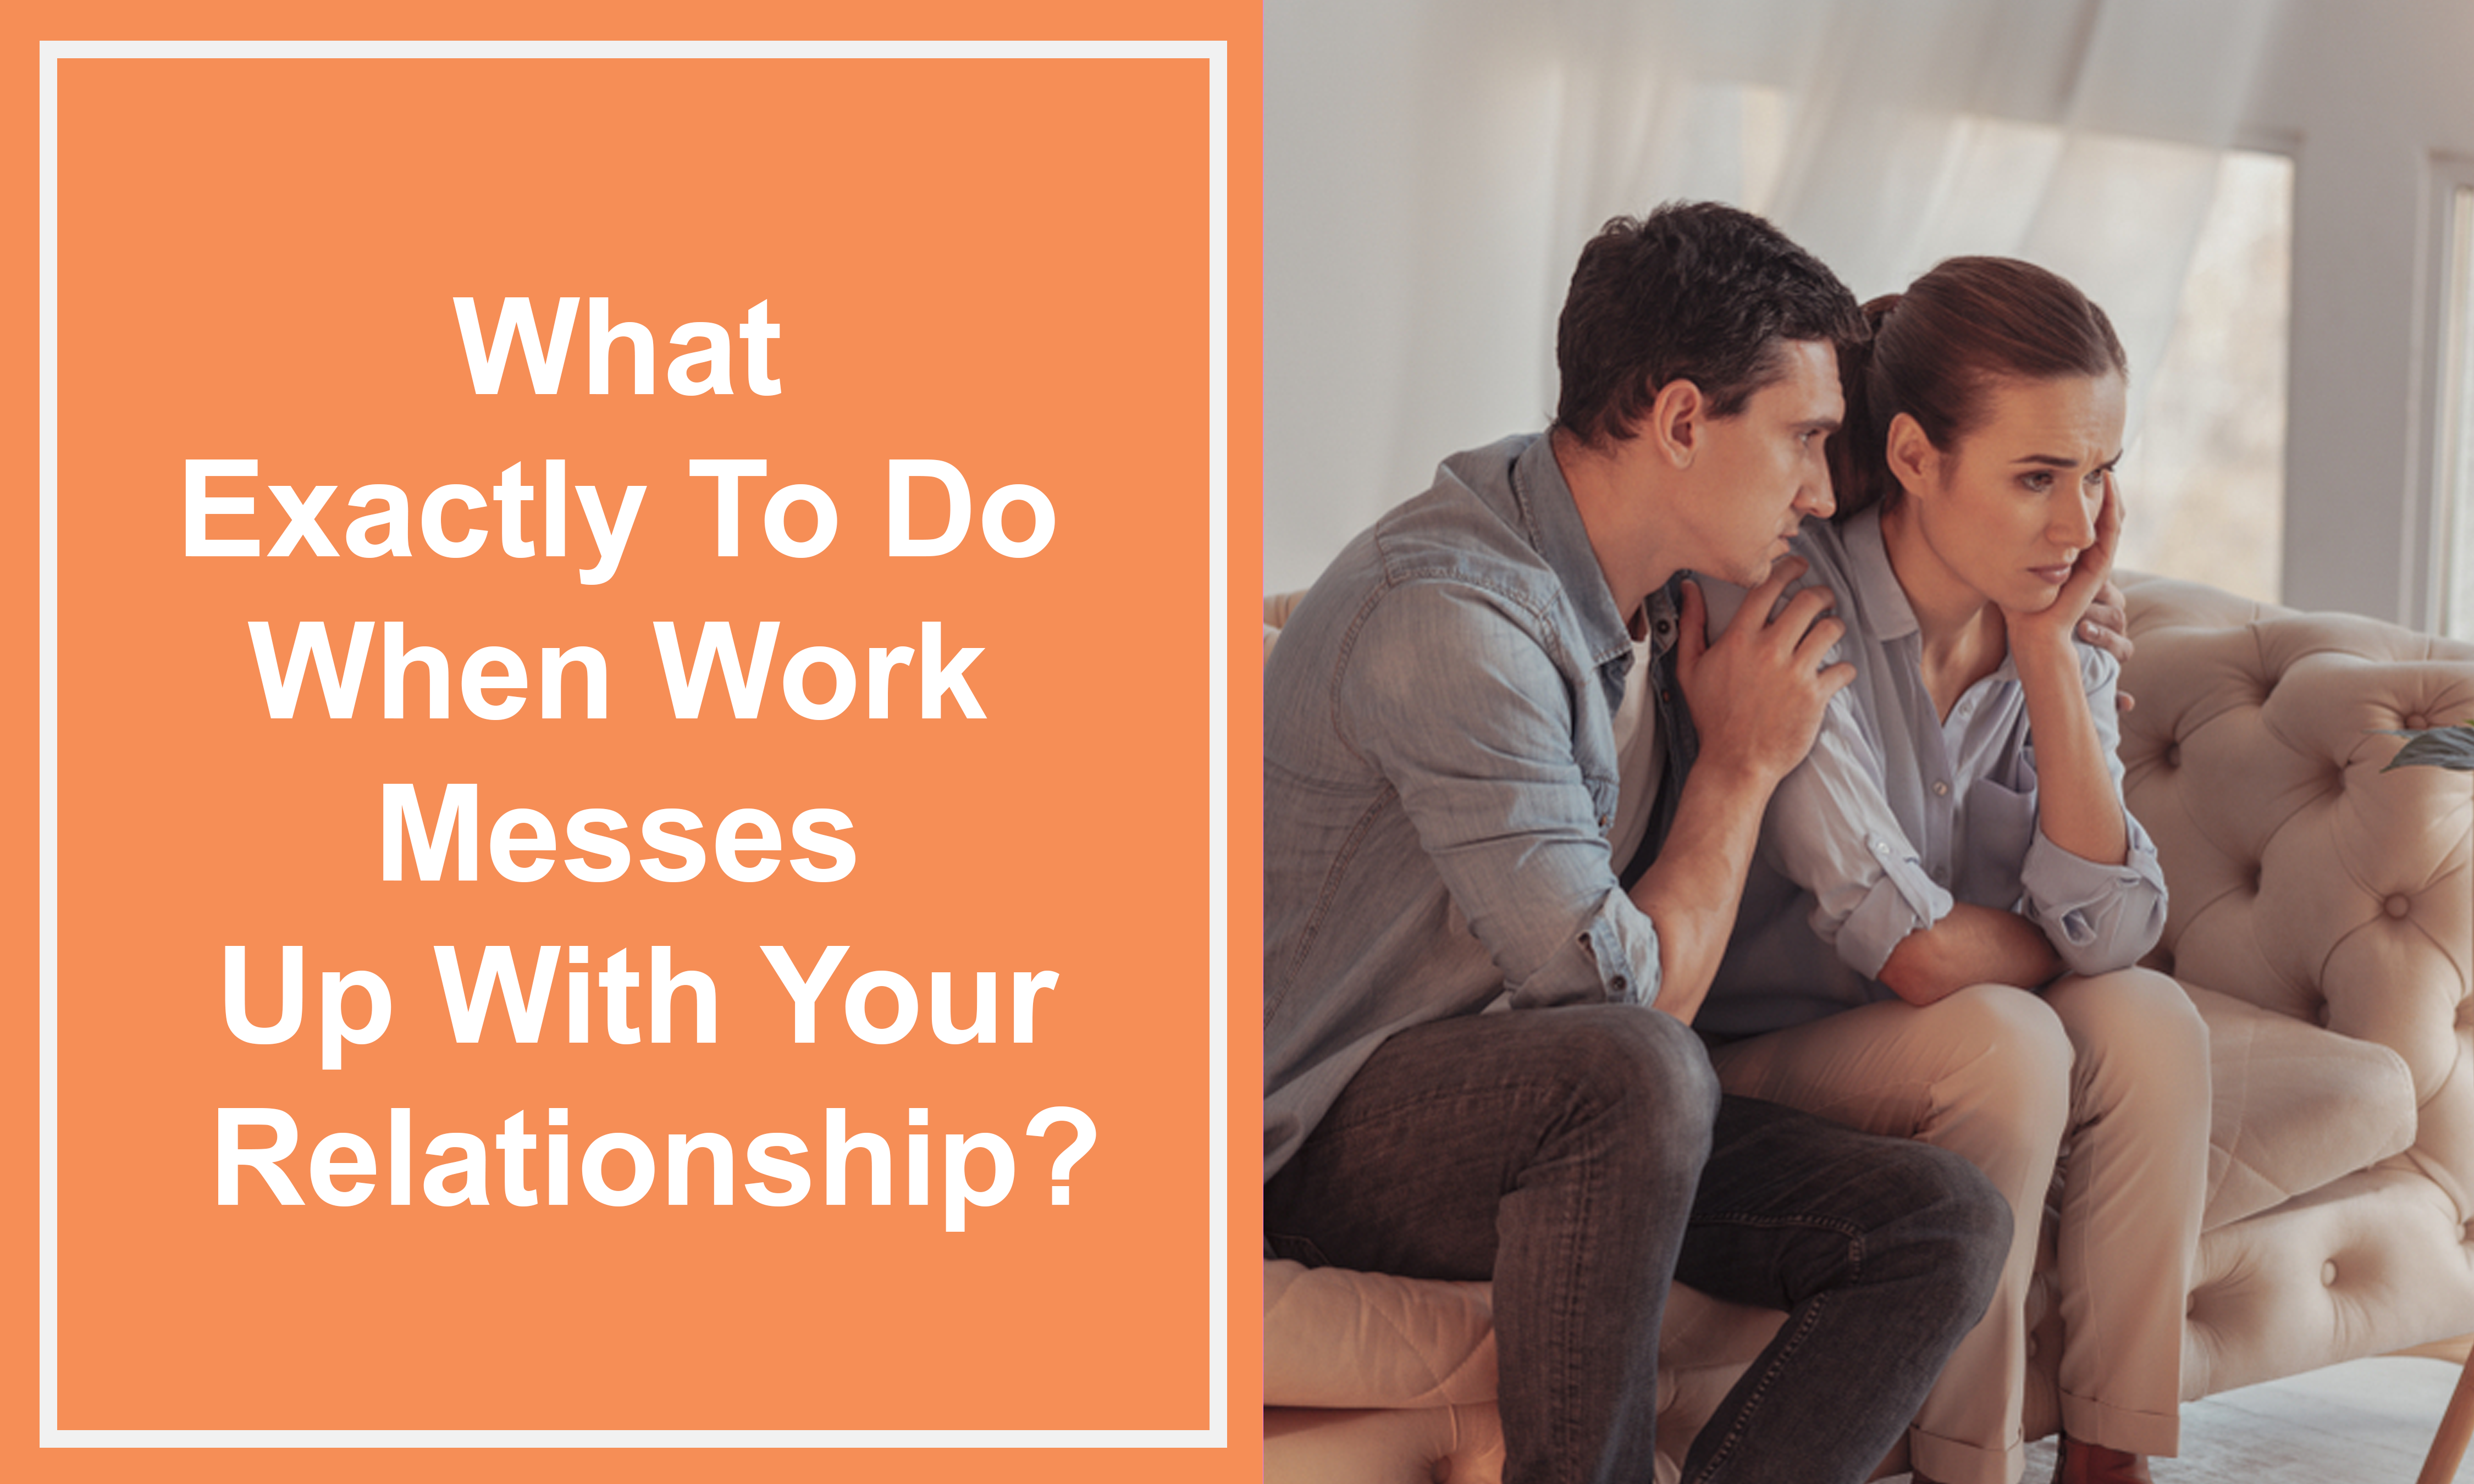 What Exactly To Do When Work Messes Up With Your Relationship